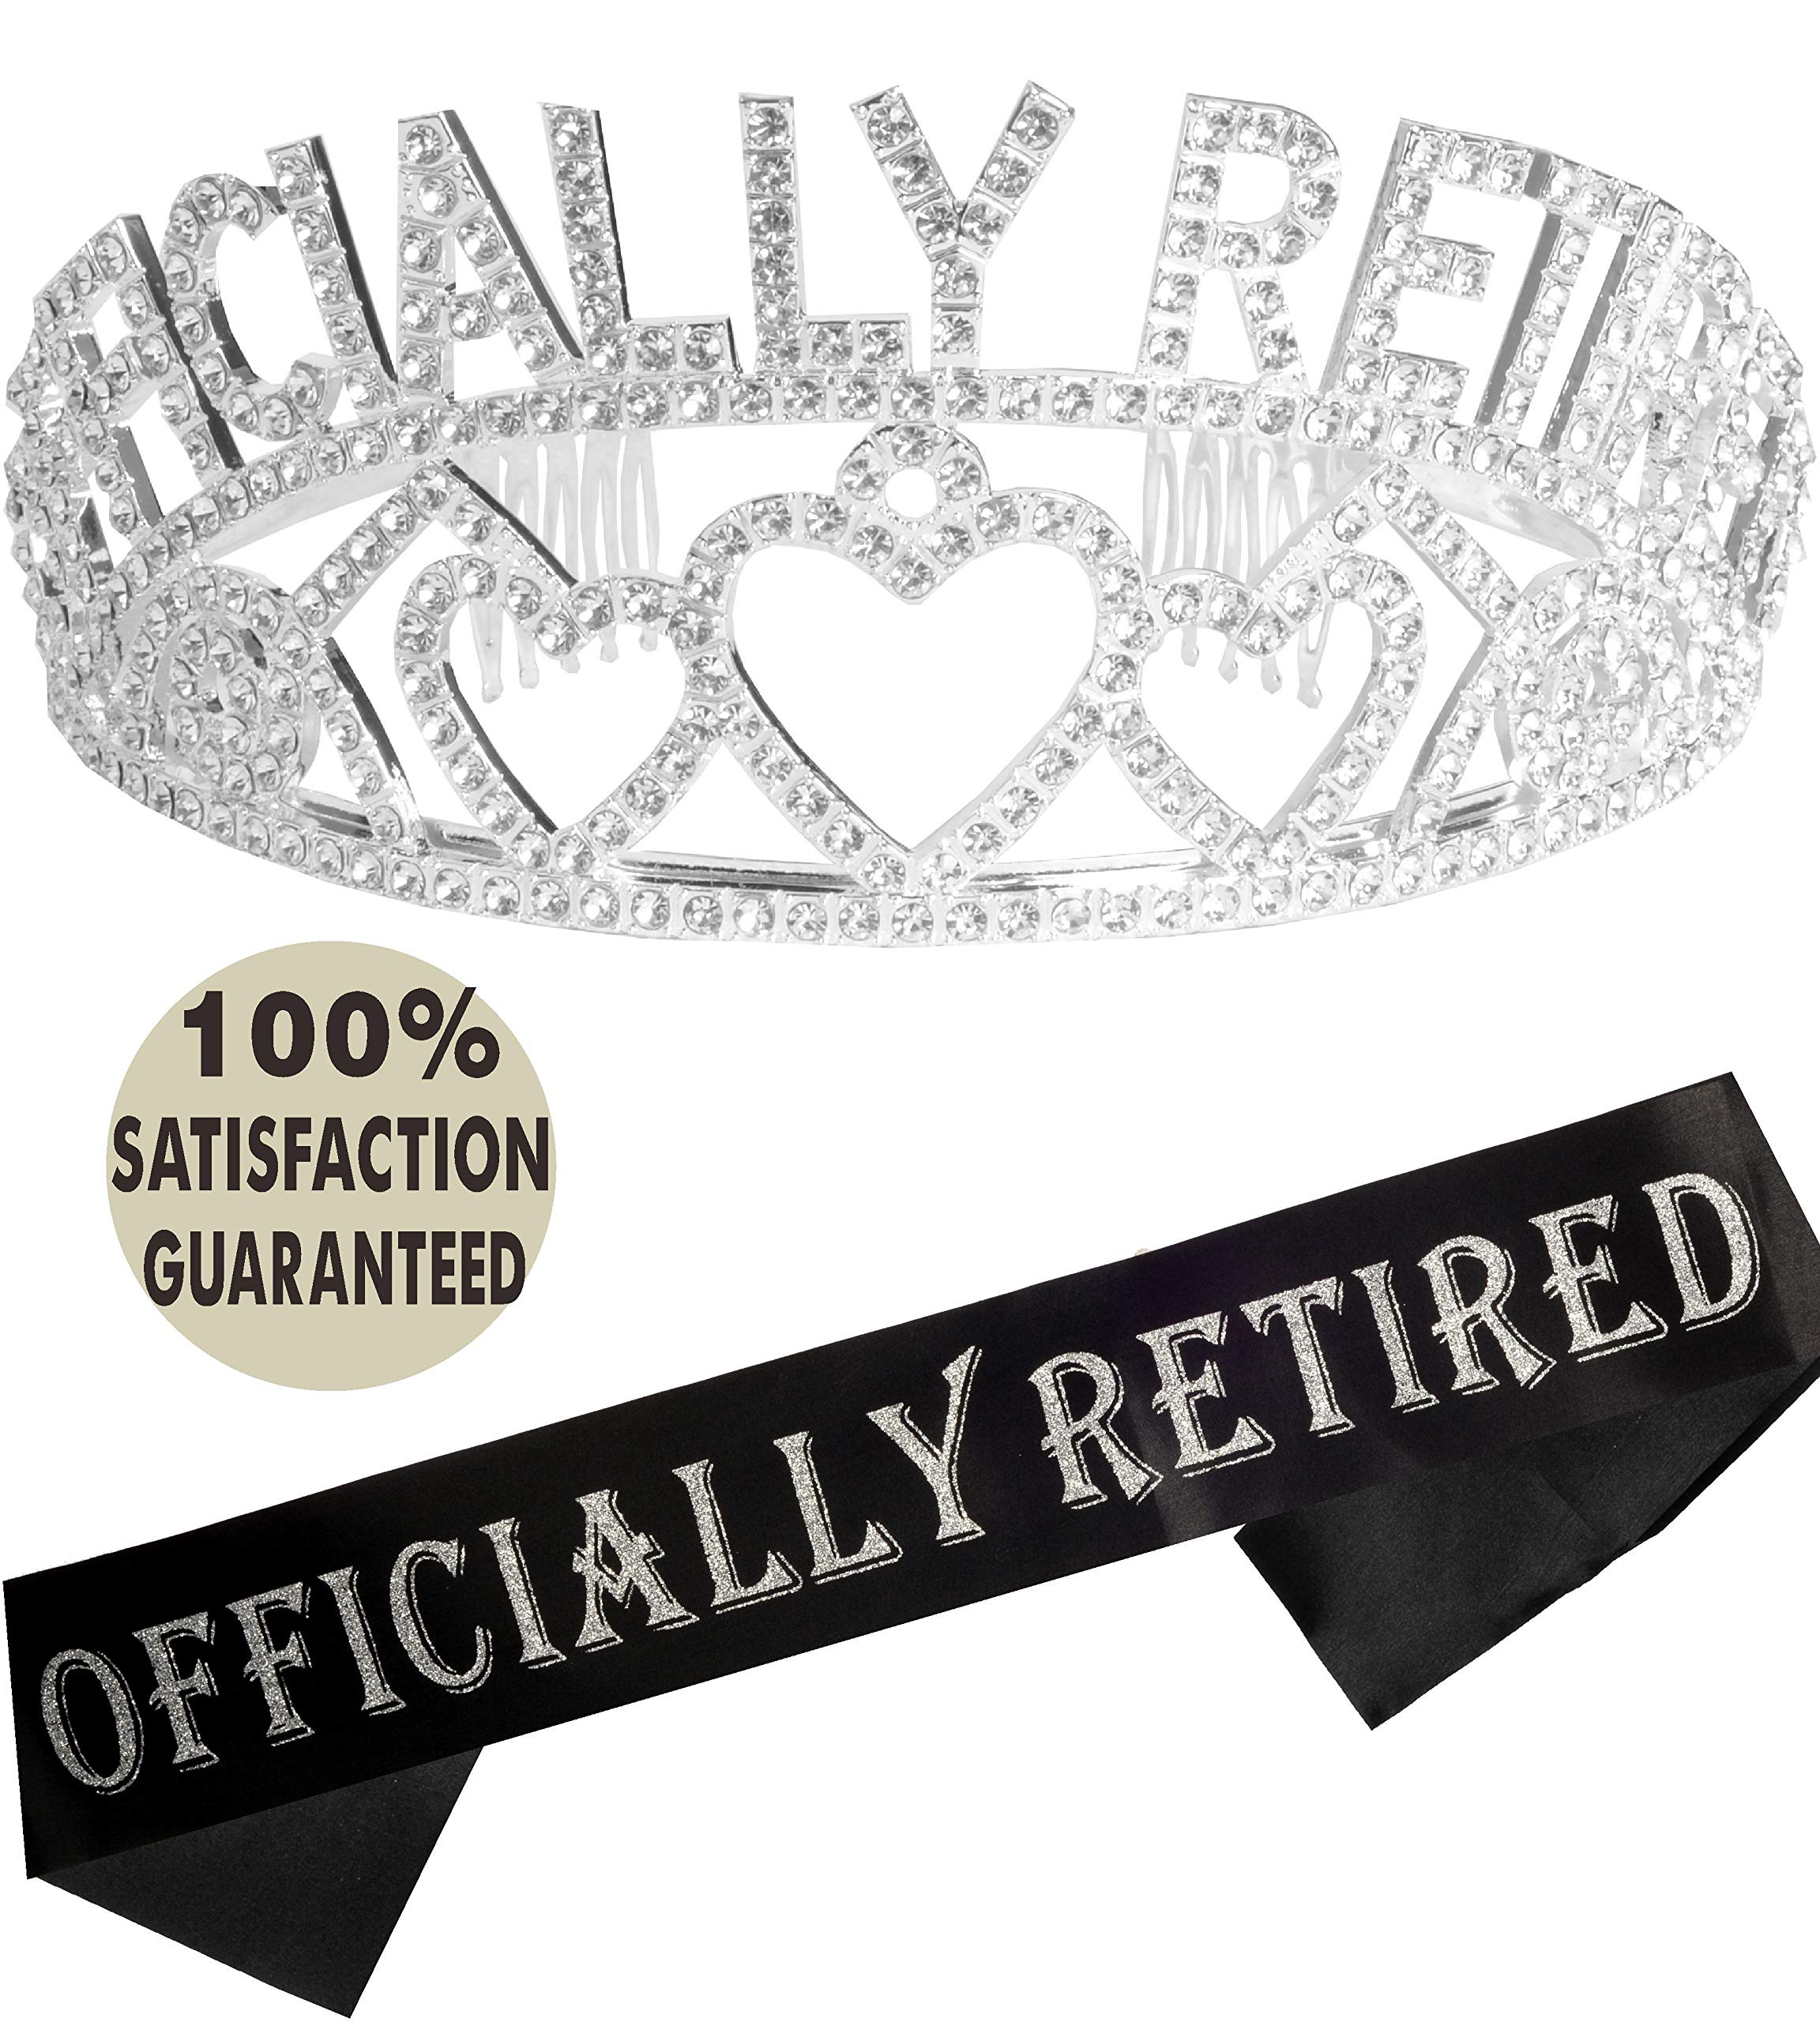 Officially Retired Retirement Party Set   Officially Retired Tiara/Crown   Retired Sash   Officially Retired Satin Sash  Retirement Party Supplies, Gifts,Favors and Decorations   Great for Retireme